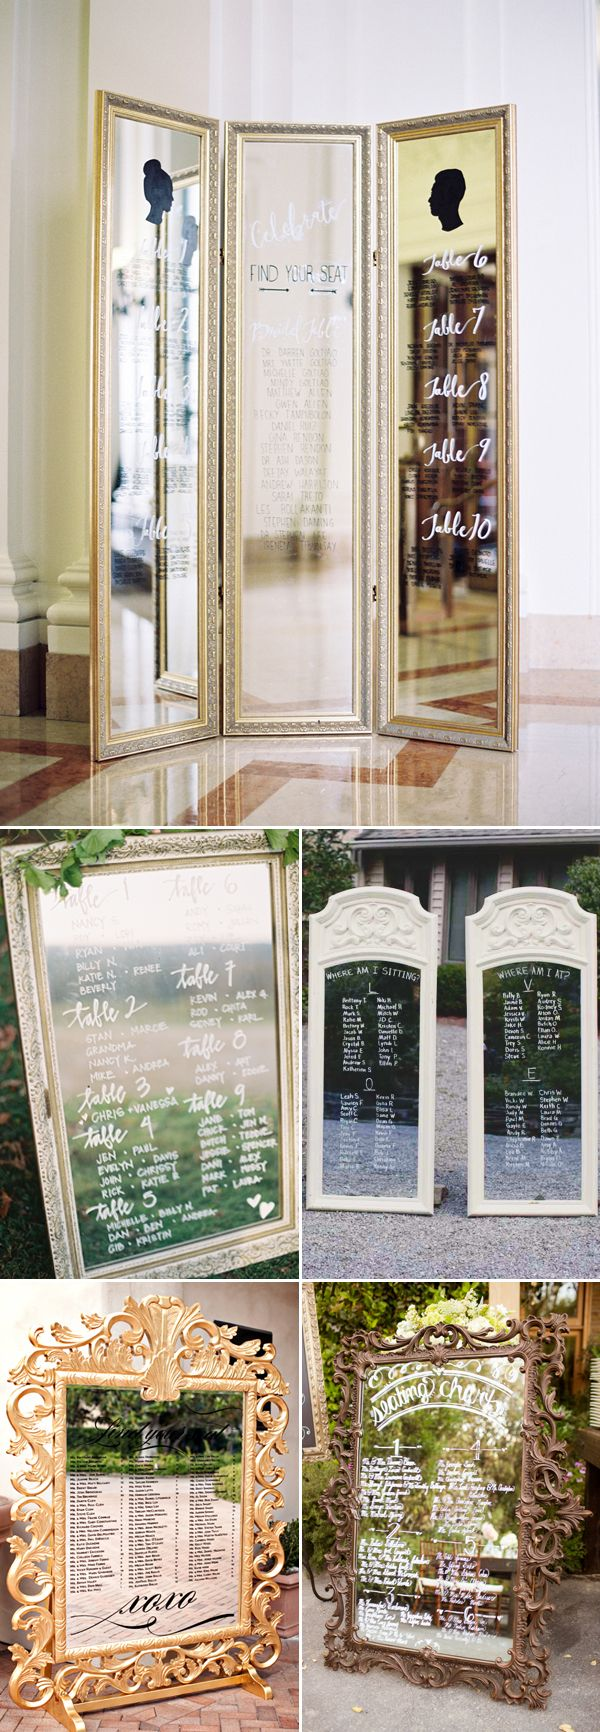 mirror will template - best 20 wedding mirror ideas on pinterest